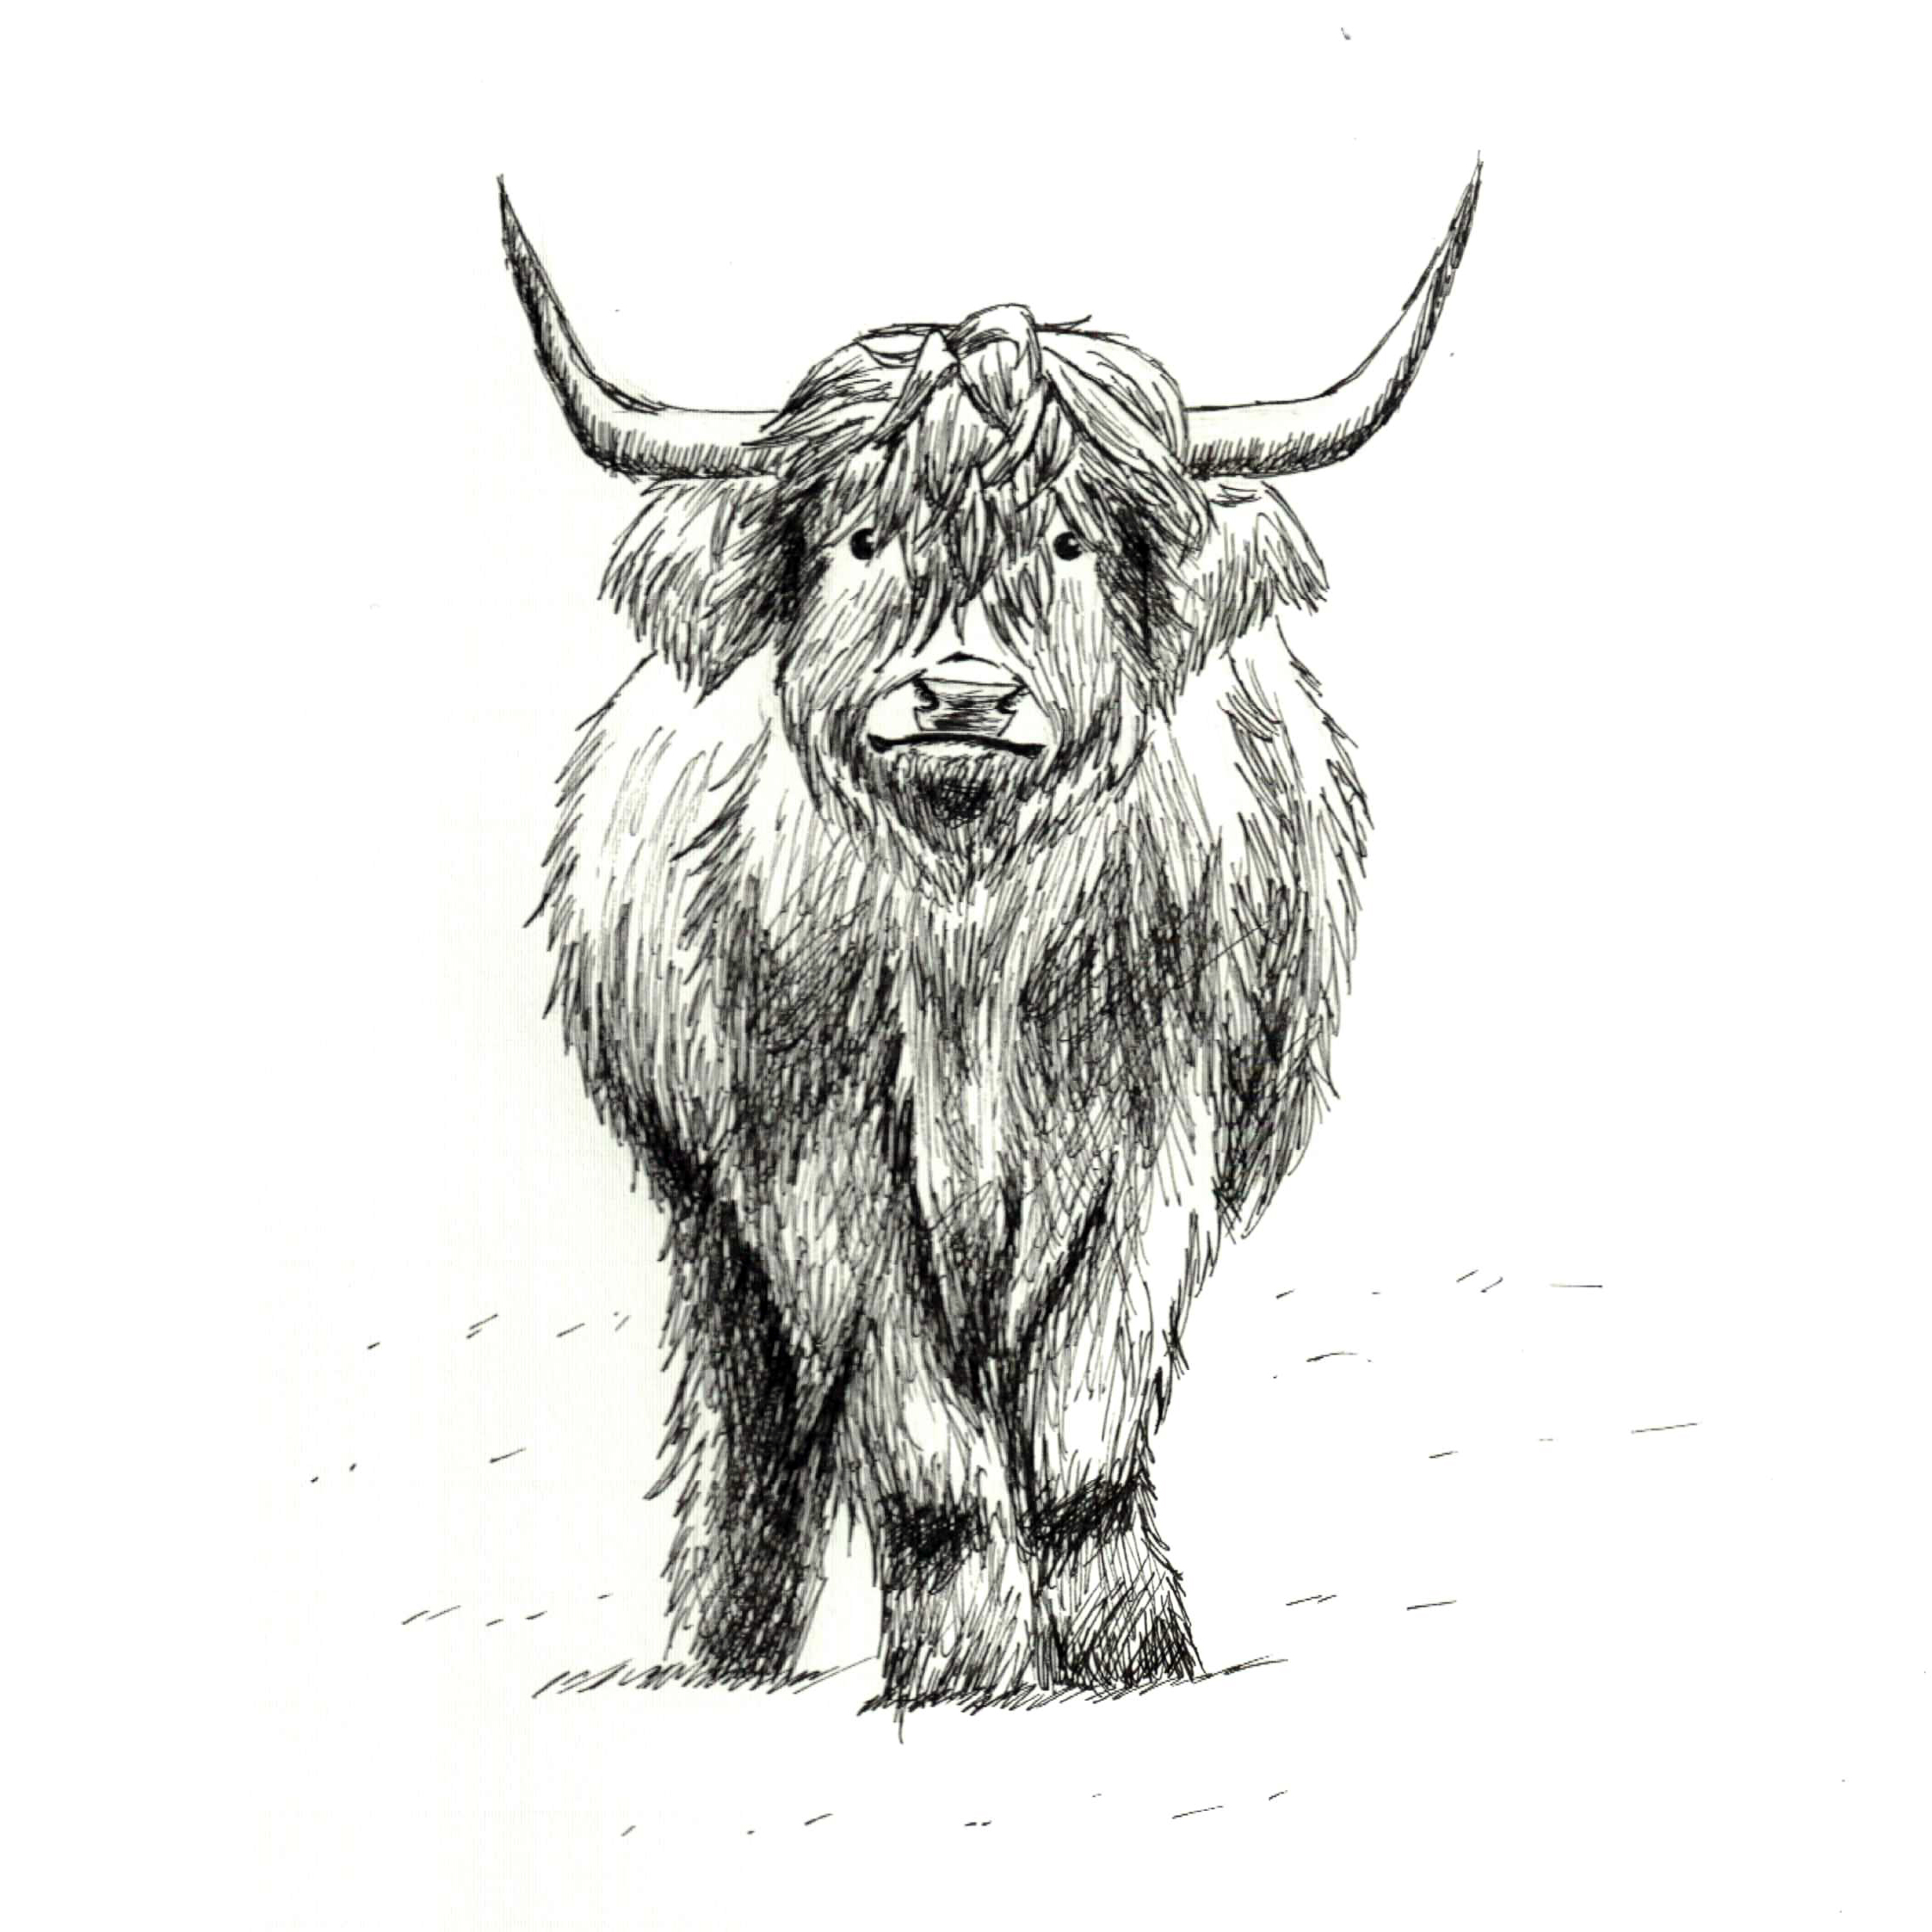 Day 13: Cow